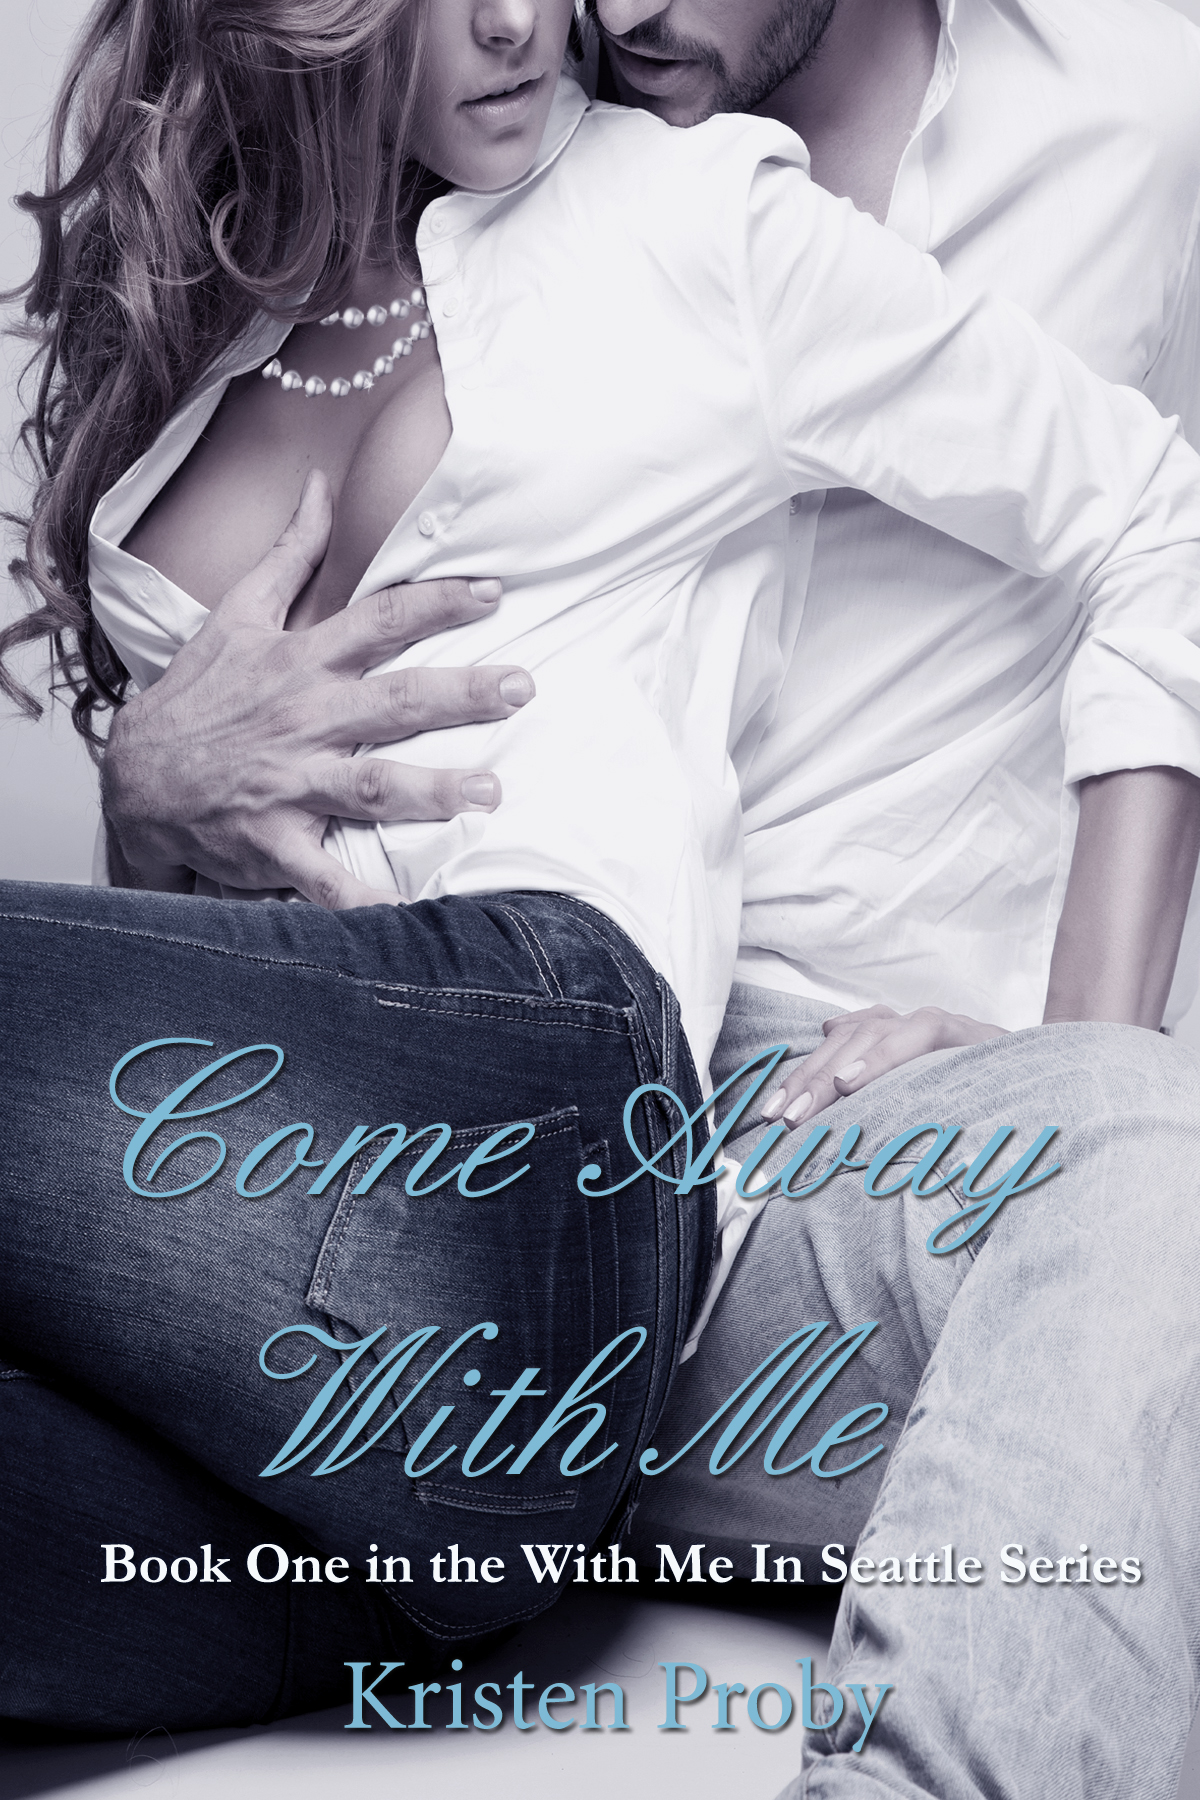 Kristen Proby - Come Away With Me